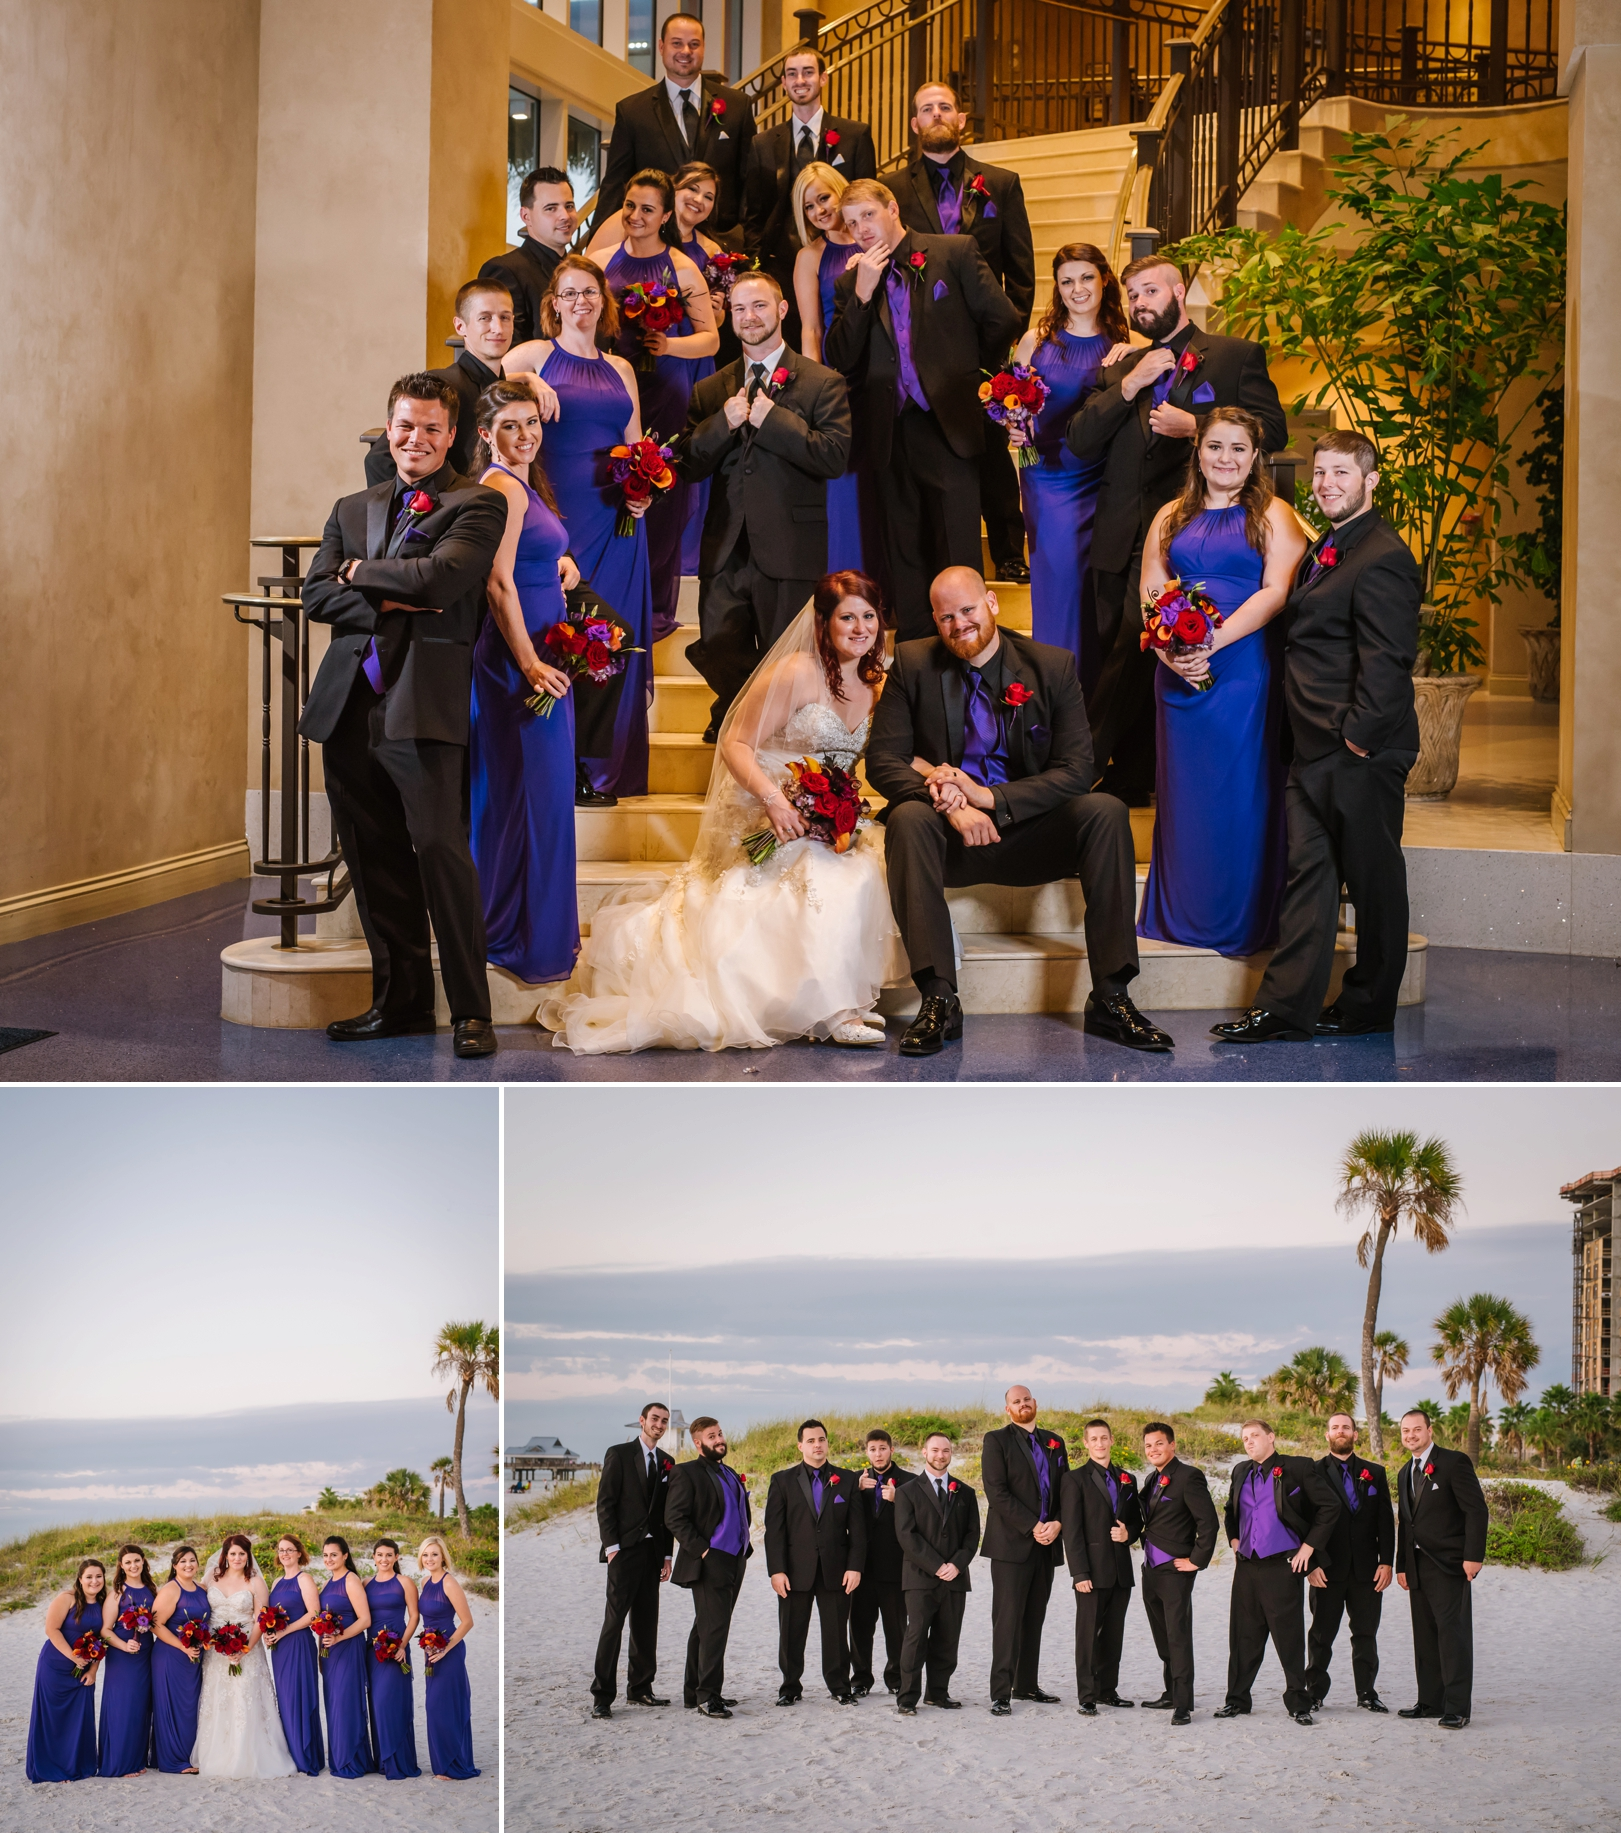 clearwater-beach-hyatt-masquerade-ballroom-themed-wedding-photograpy_0016.jpg